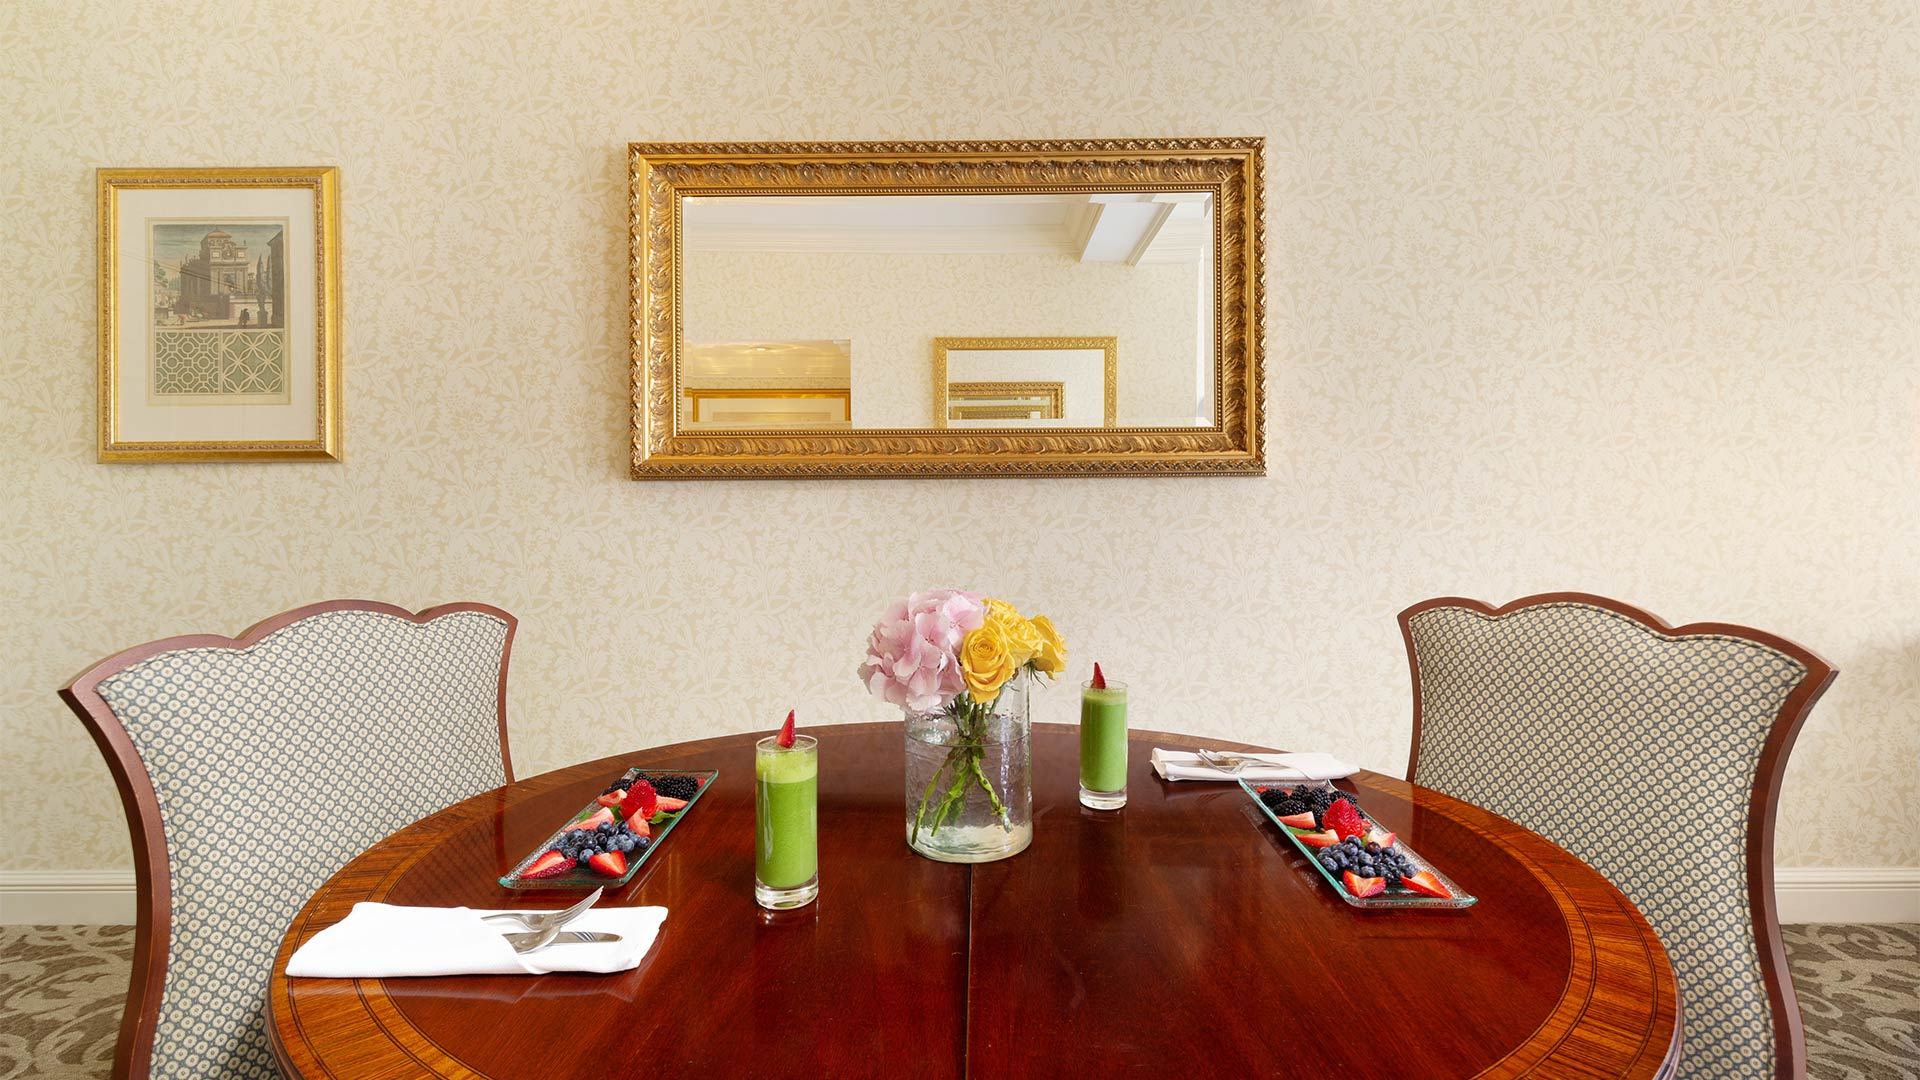 detail shot of the suite's dining area. Two chairs are placed around a circular table. There is breakfast on top of the table.